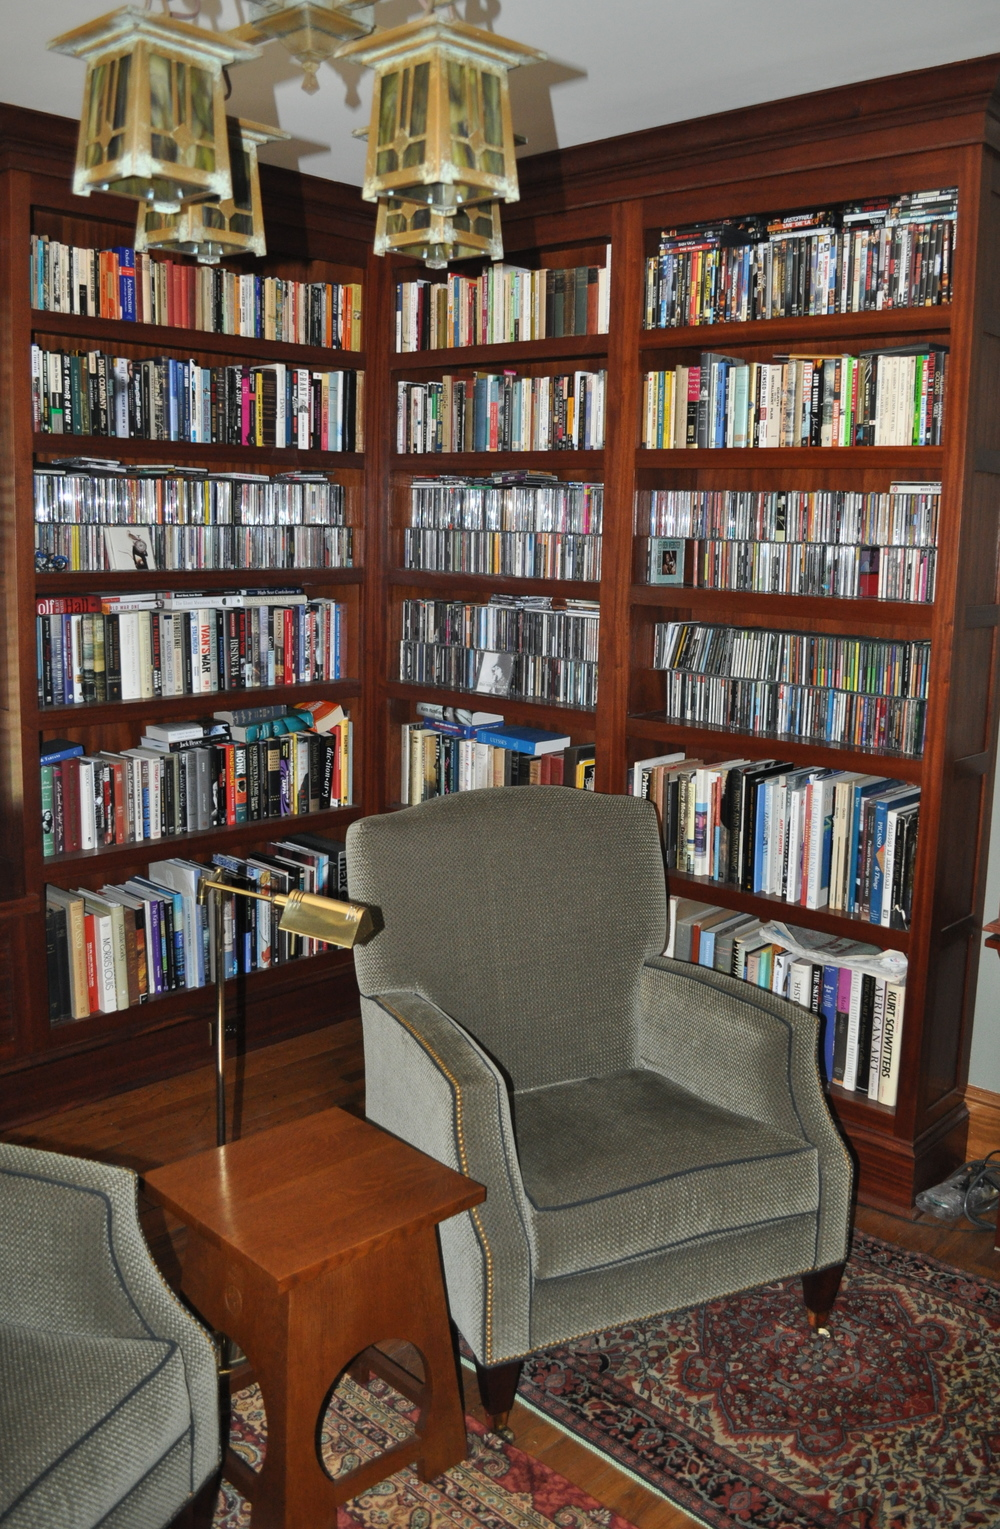 Sapele Bookshelves. Floor to ceiling bookshelves really look handsome in this library. All sapele construction.